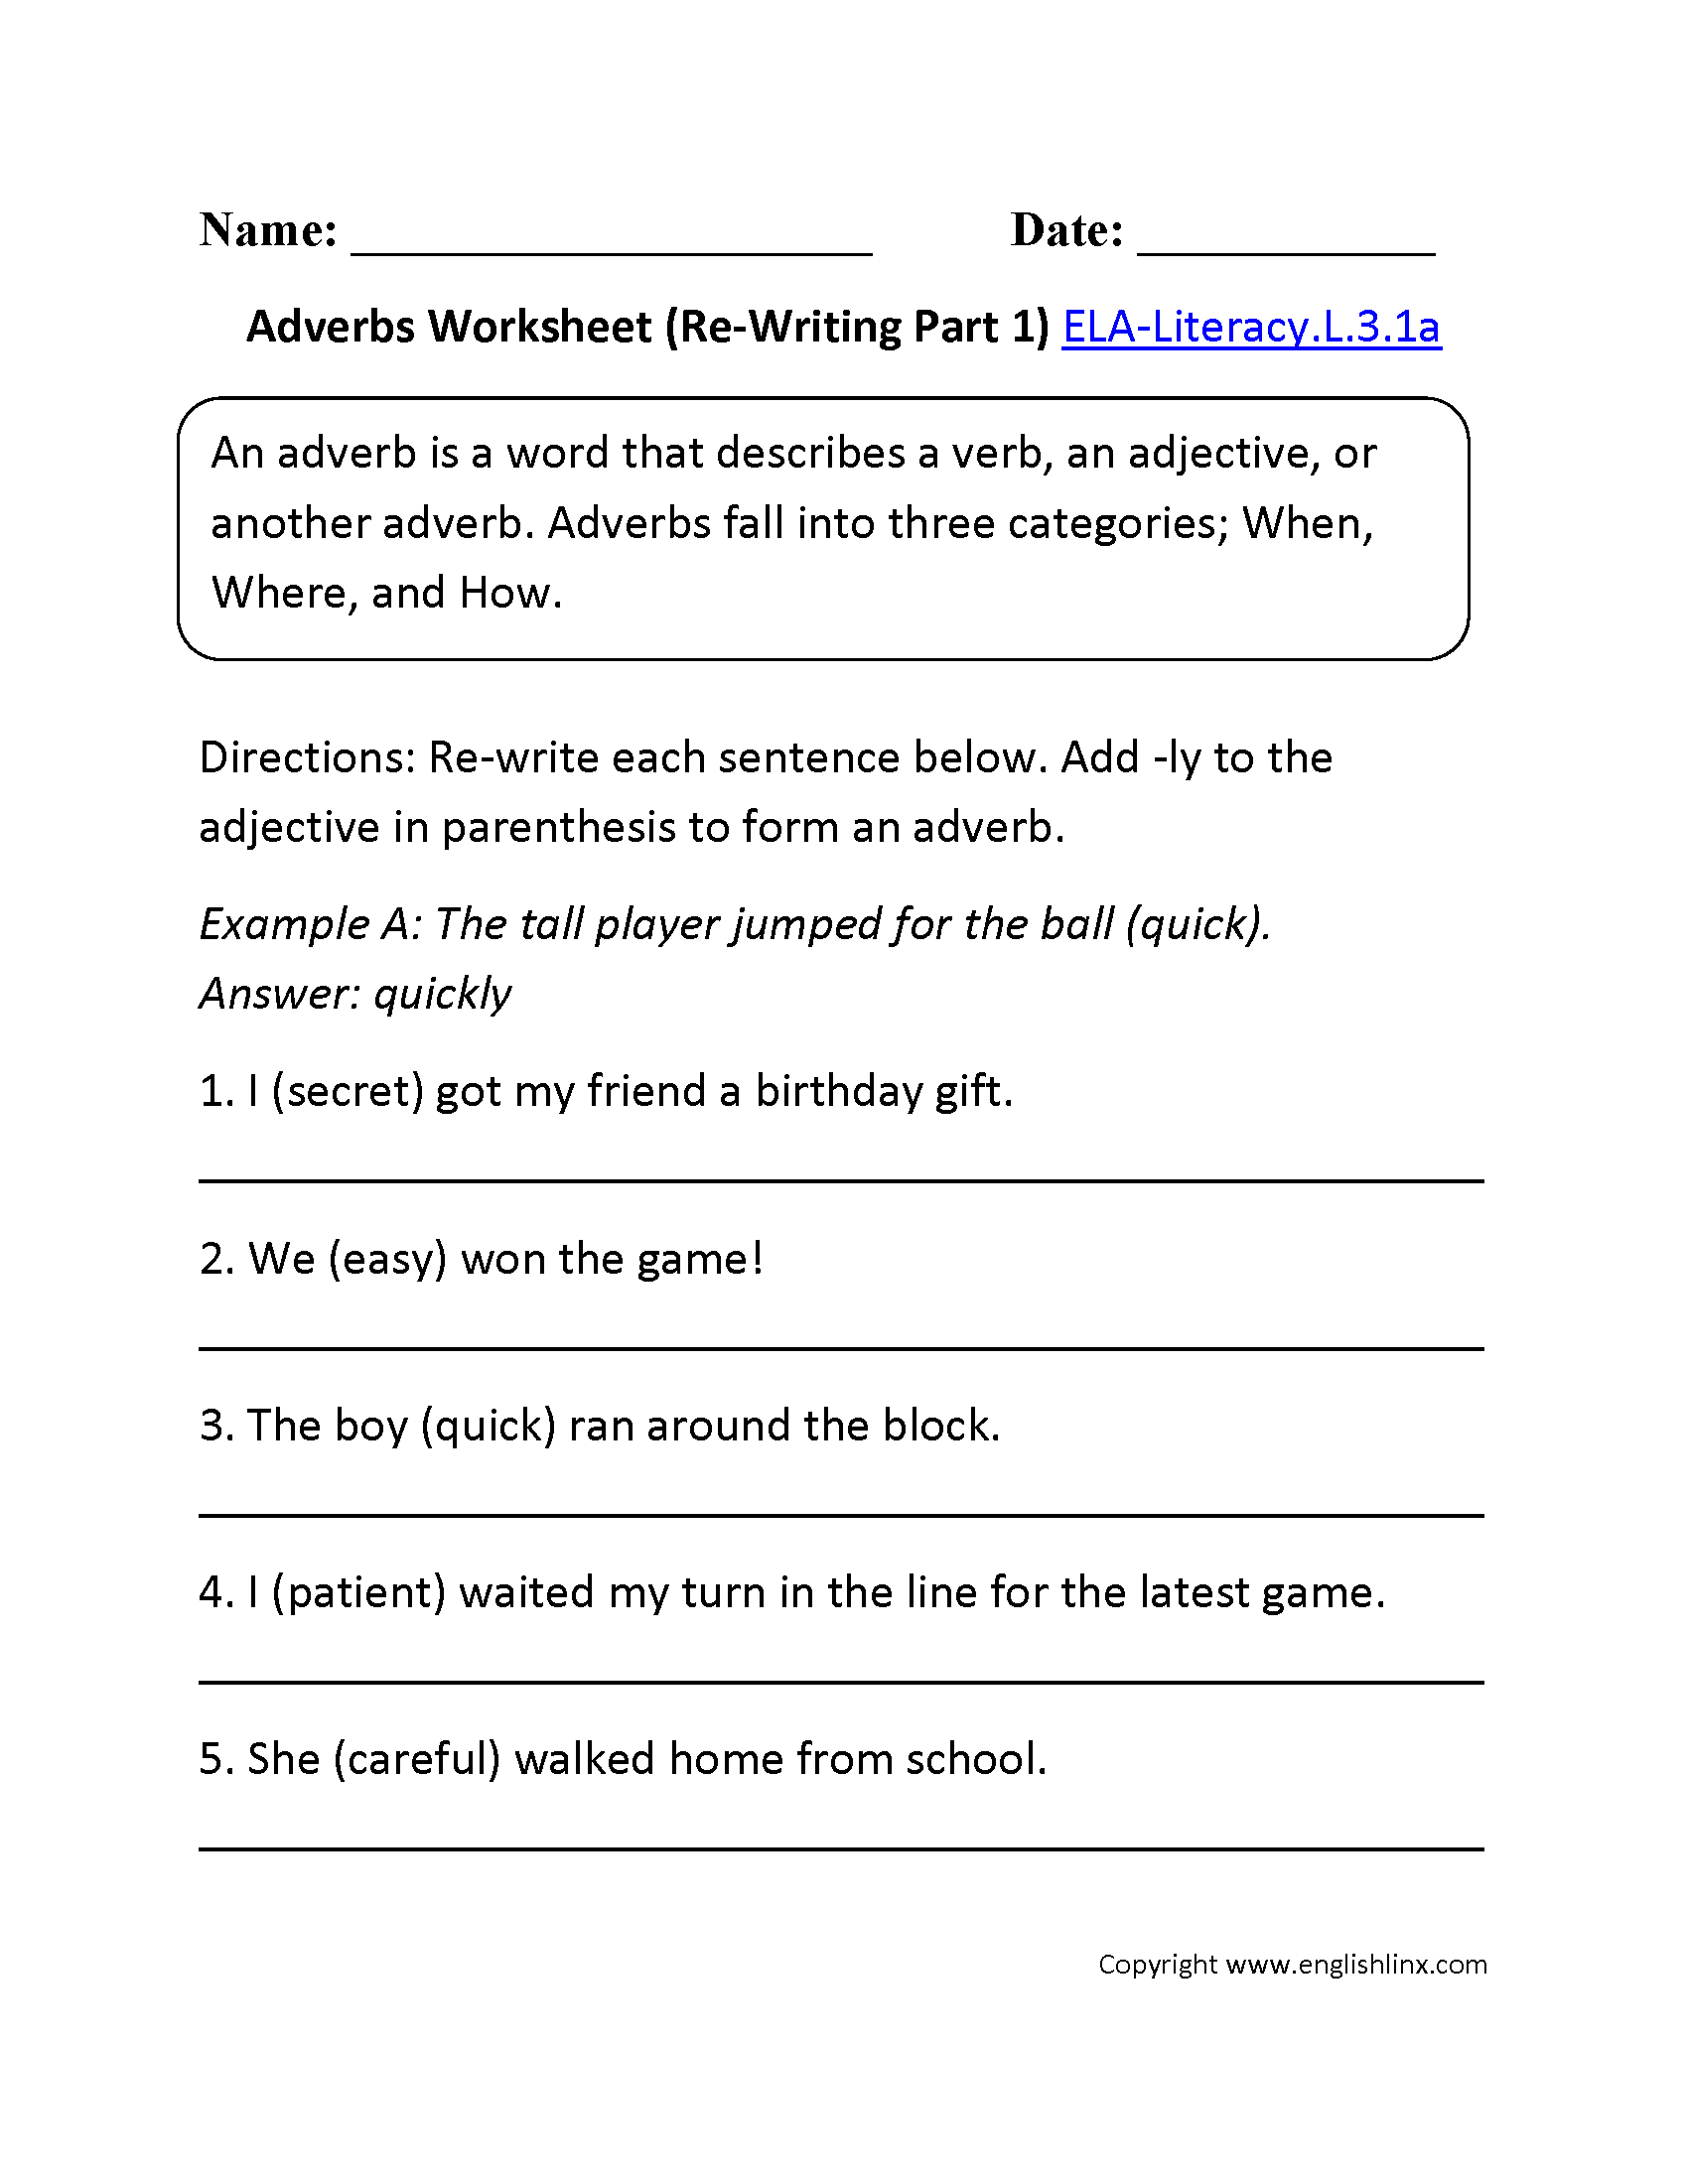 worksheet Adjectives Worksheets For Grade 5 comparative and superlative adjectives worksheet 2 l 3 1 ela literacy 1a language worksheet